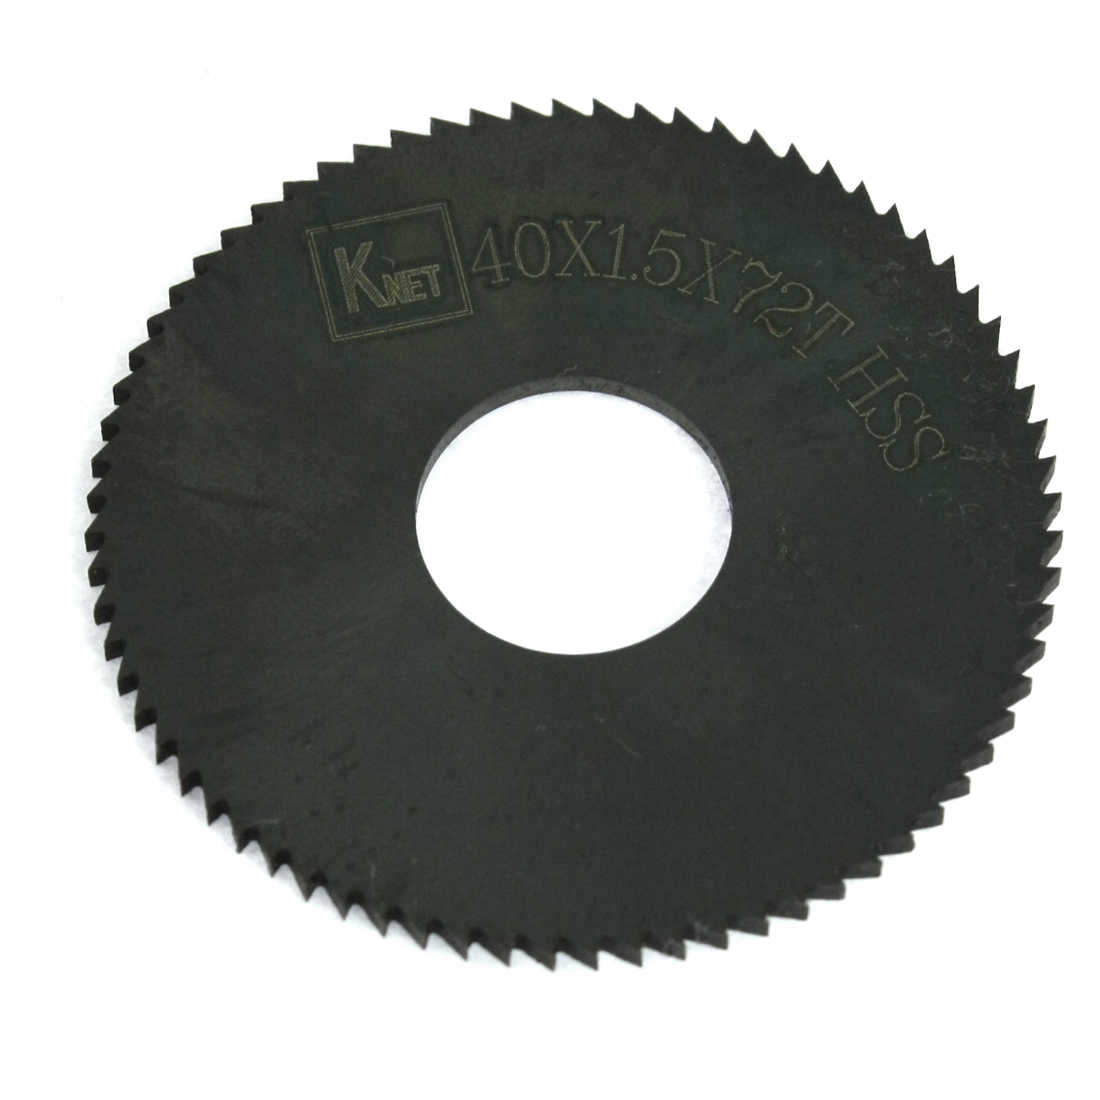 Unique Bargains Hand Tool 72 Teeth Slitting Saw Cutting Blade 40mm x 1.5mm